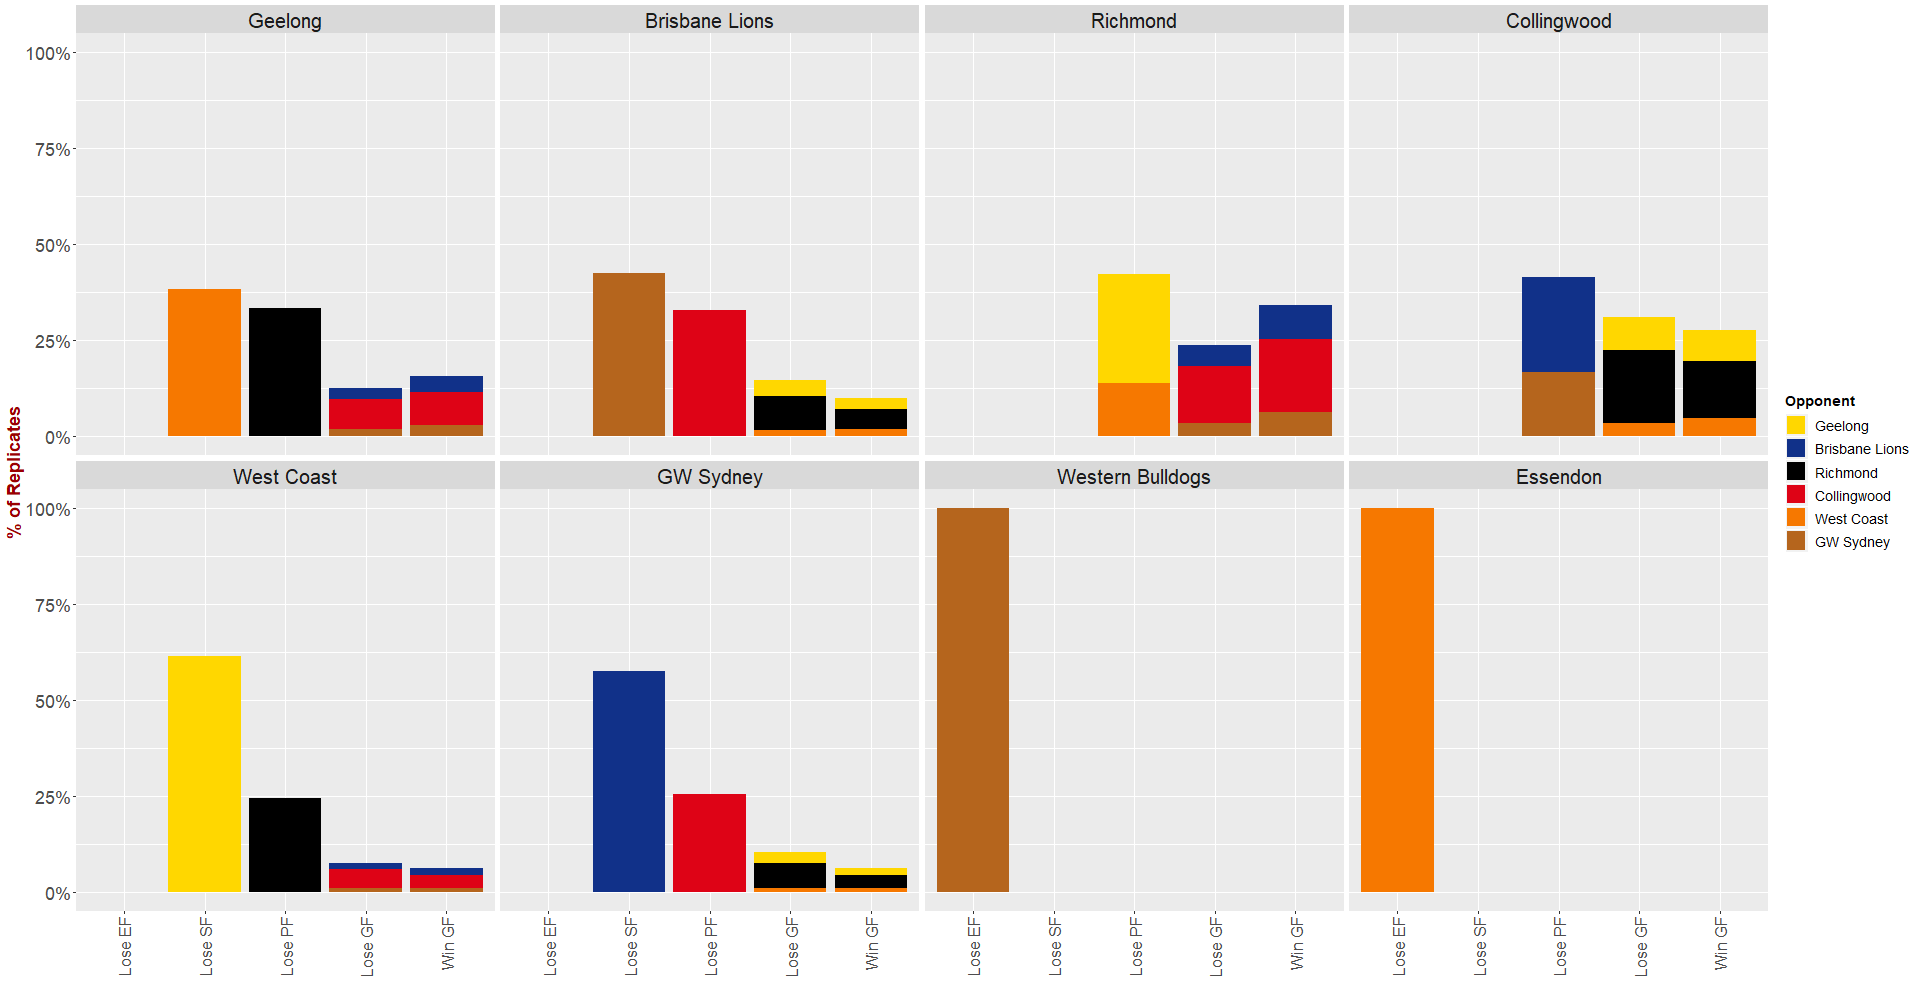 Dinosaur Chart - By Opponent.png